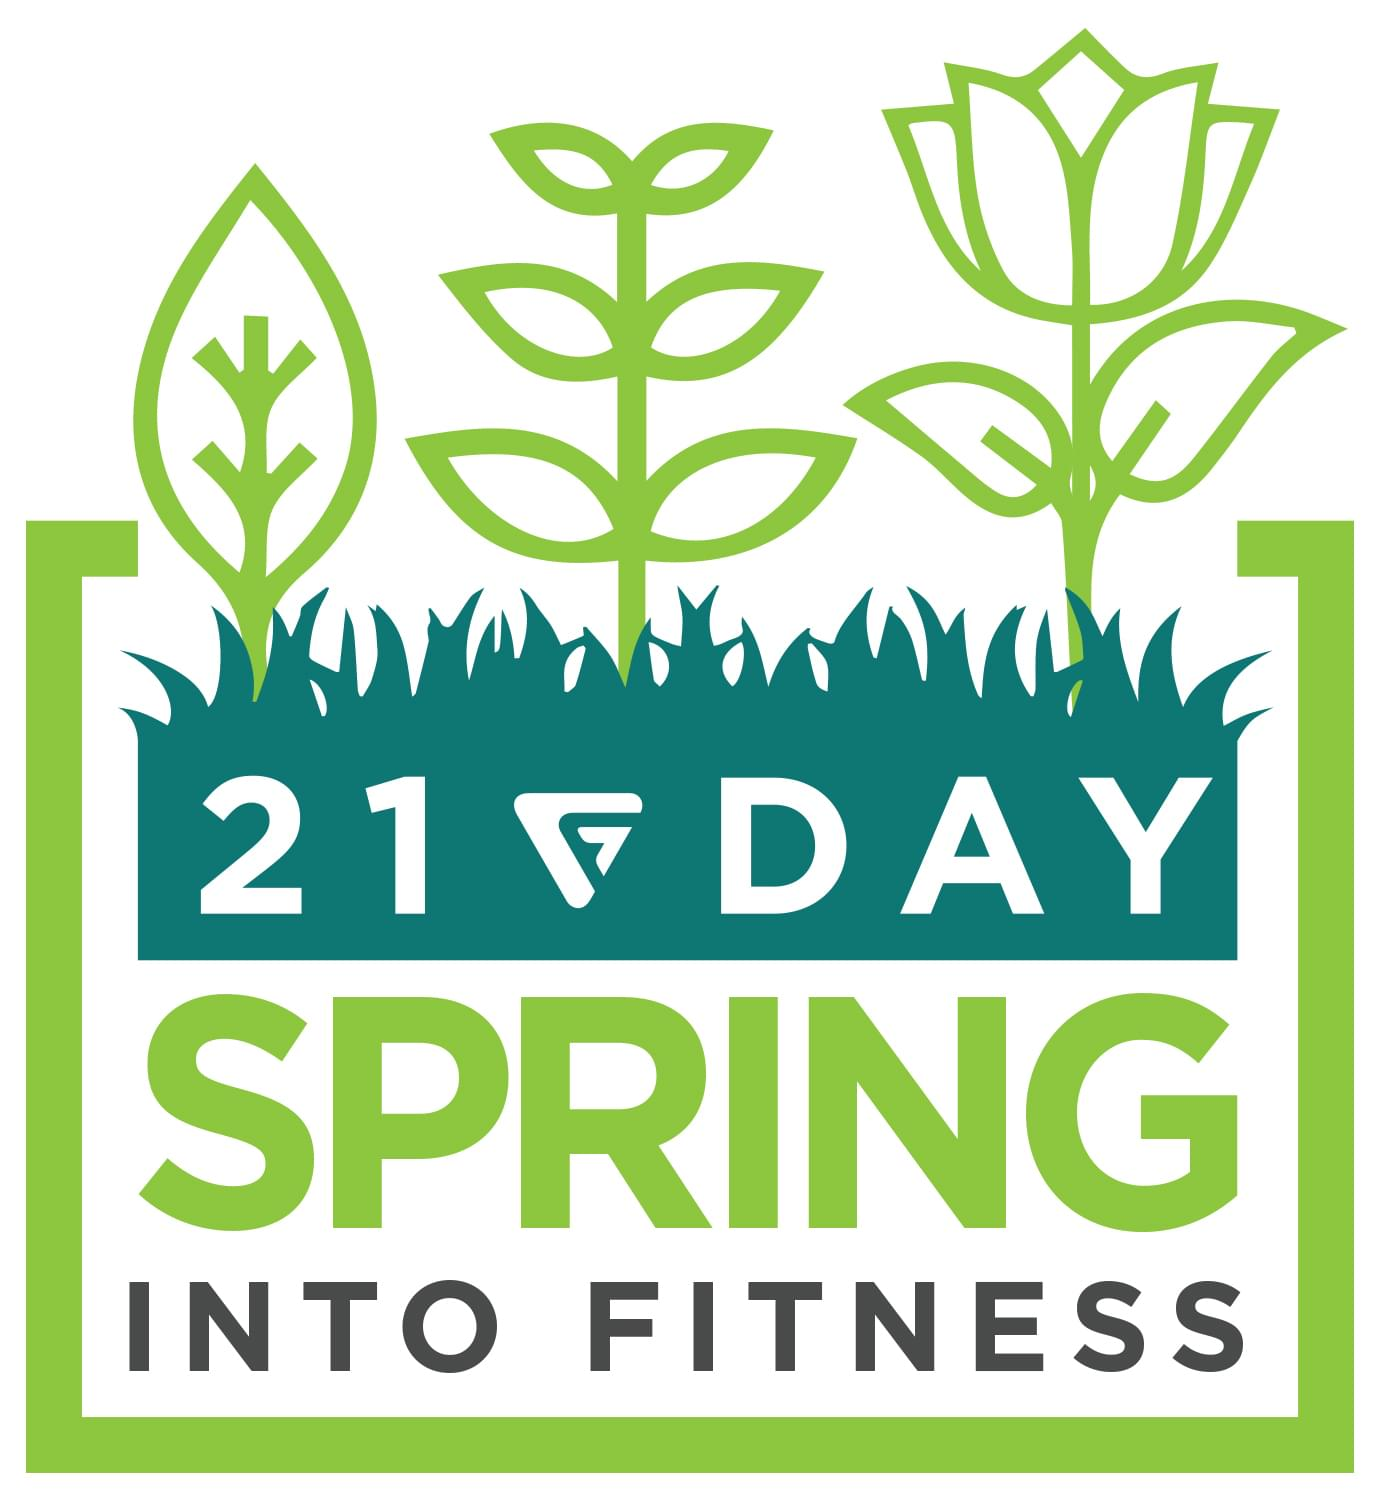 21 Day Spring Into Fitness